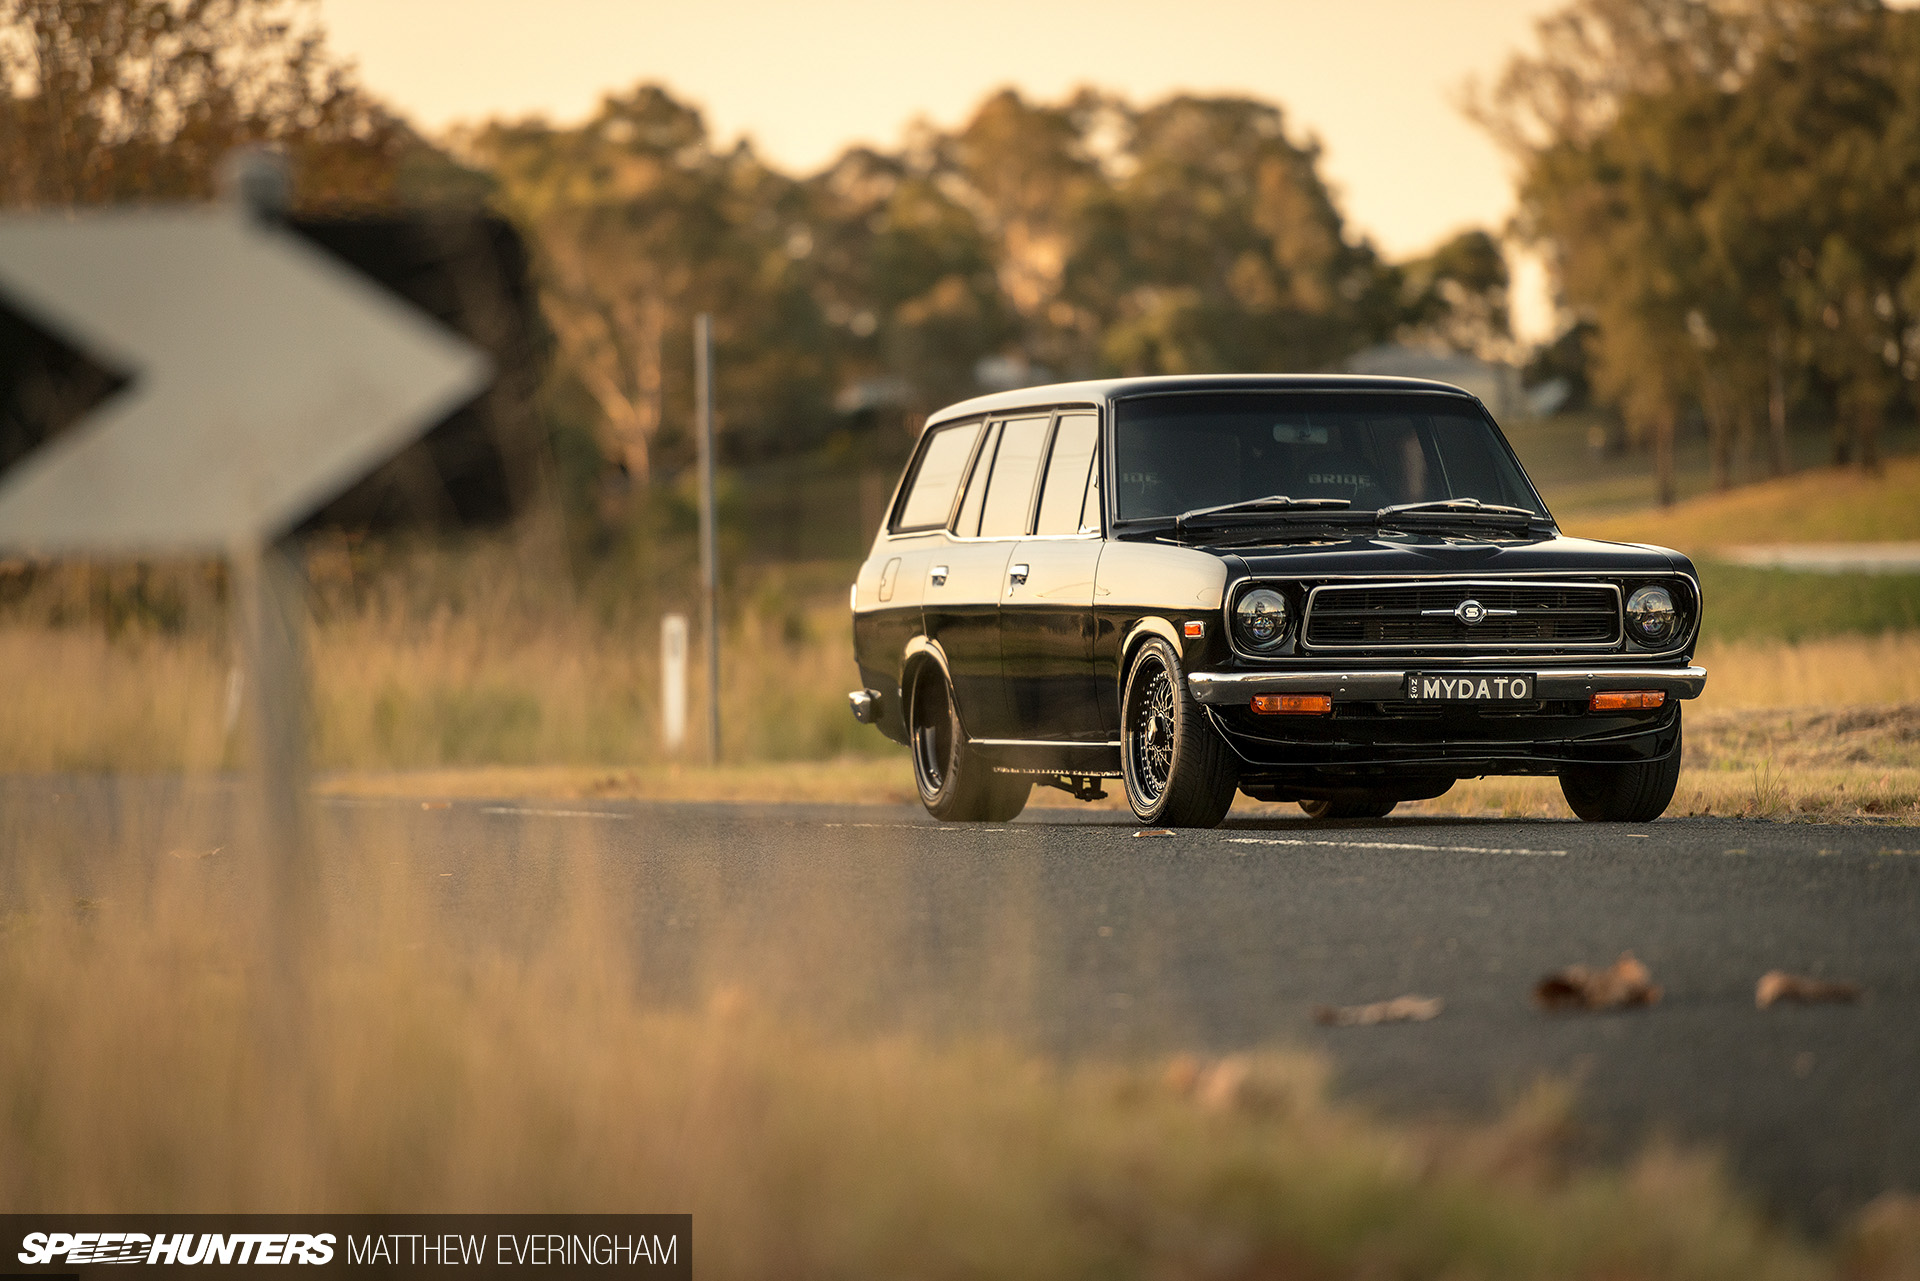 Perfection In A Black-On-Black Datsun Wagon